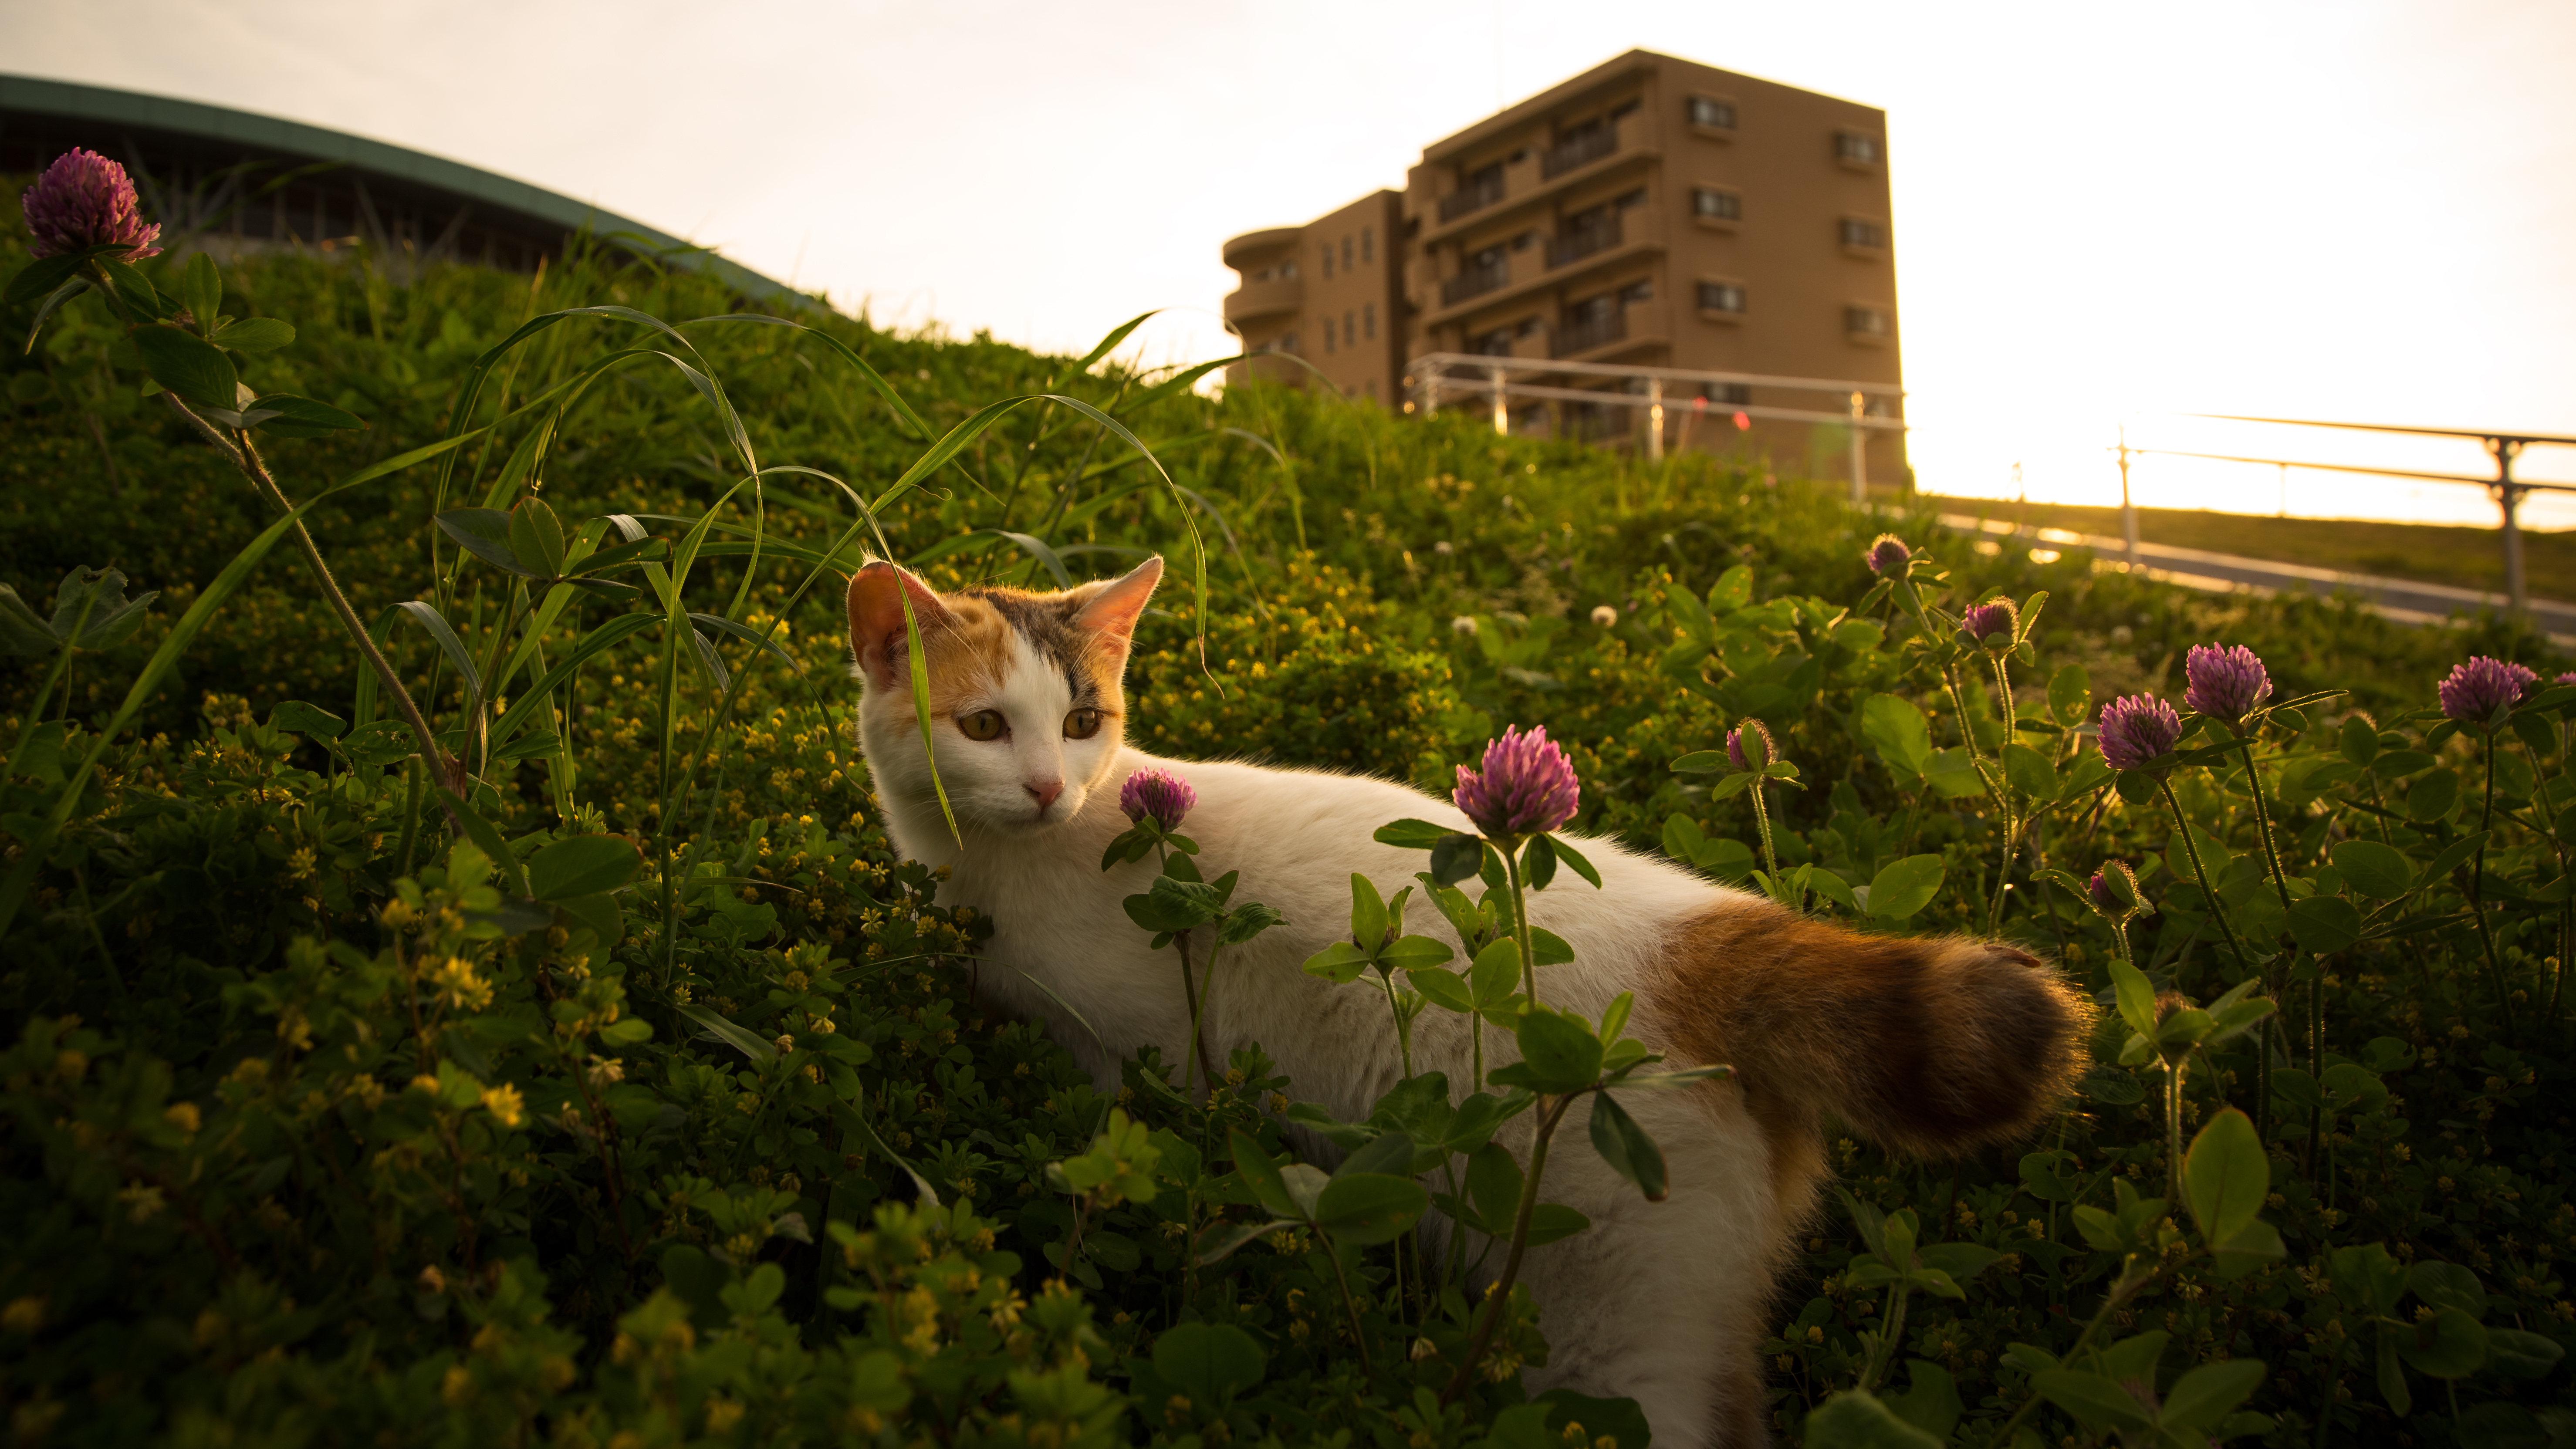 51027 download wallpaper Animals, Cat, Grass, Pet, Flowers screensavers and pictures for free